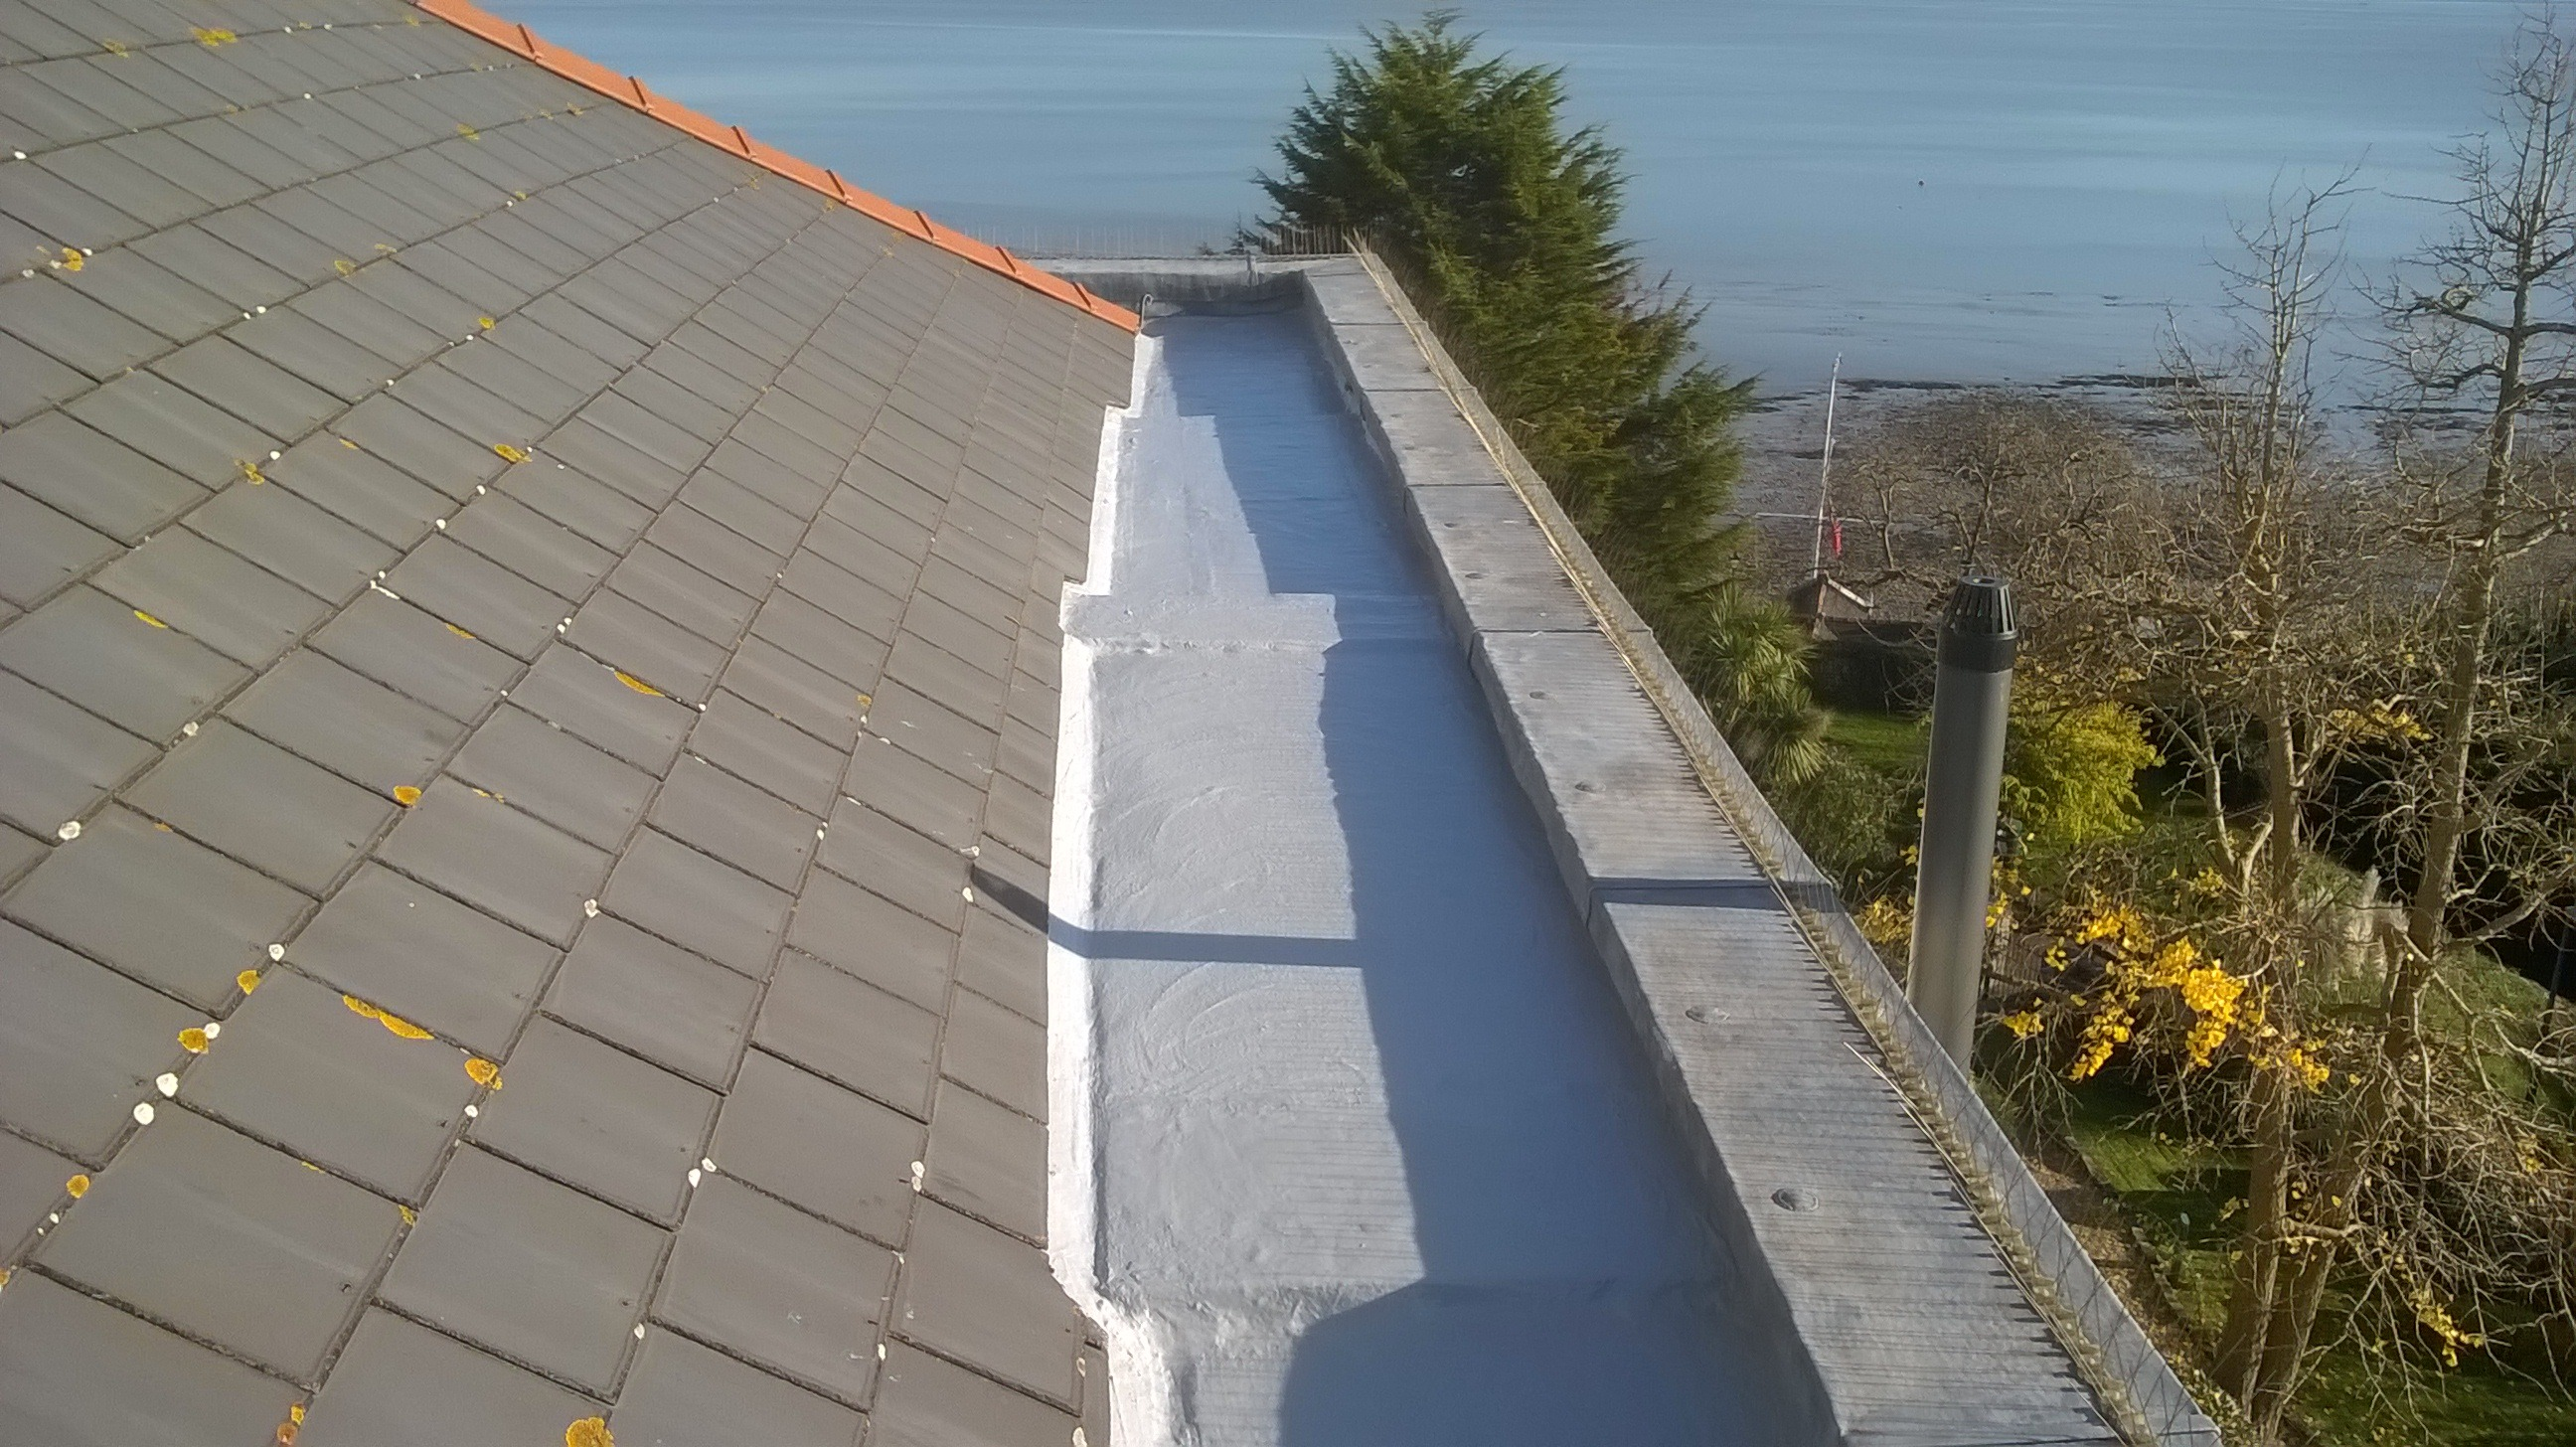 Gutter lining in Penarth South Wales